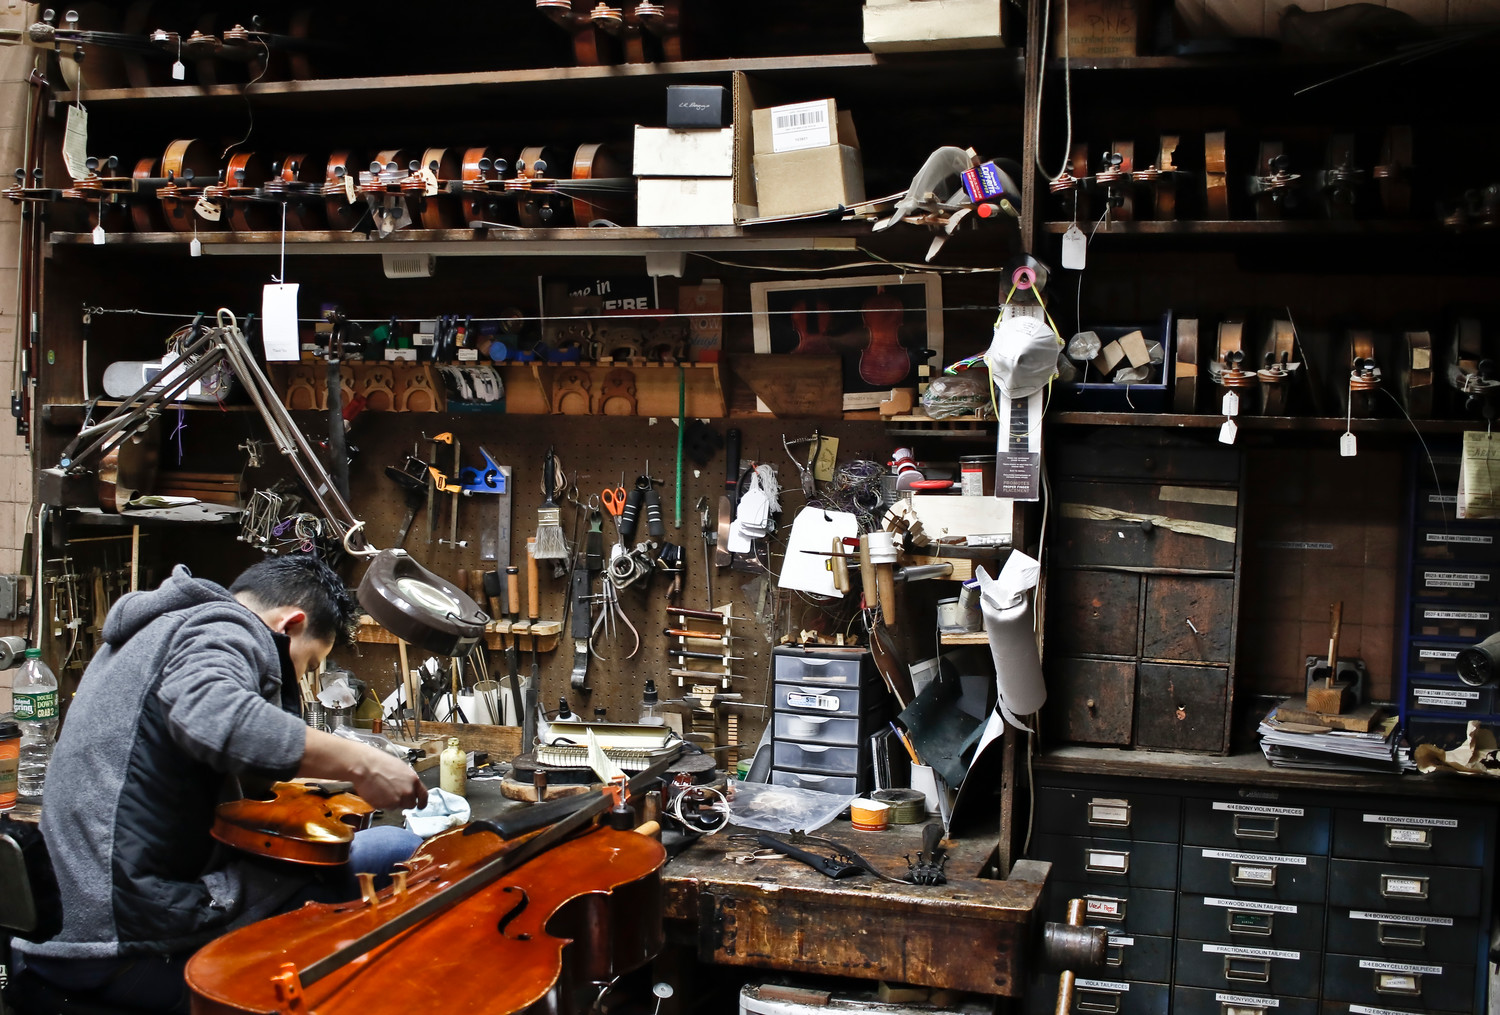 The shop is full of hundreds of tools used to restore instruments. Rigoberto Dubon worked to repair a violin.